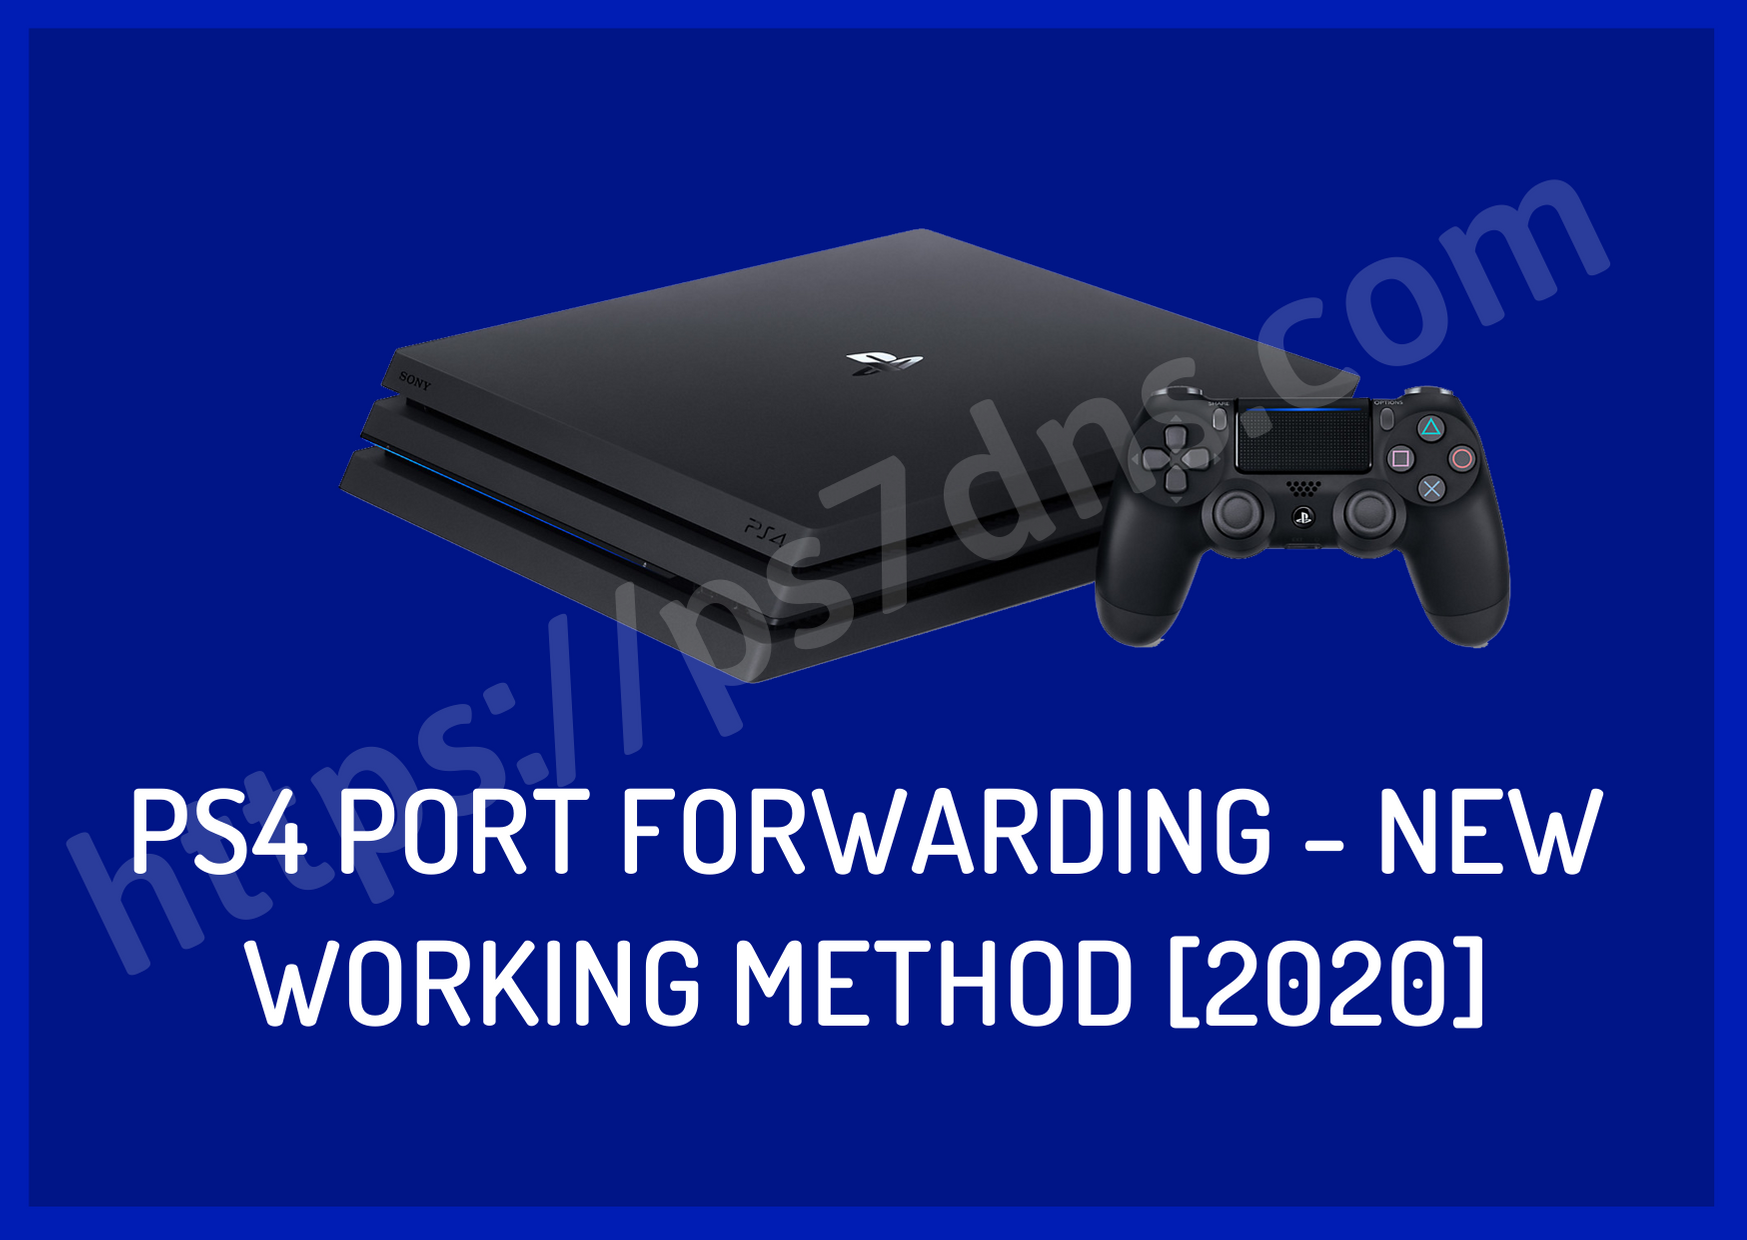 PS4 Port Forwarding